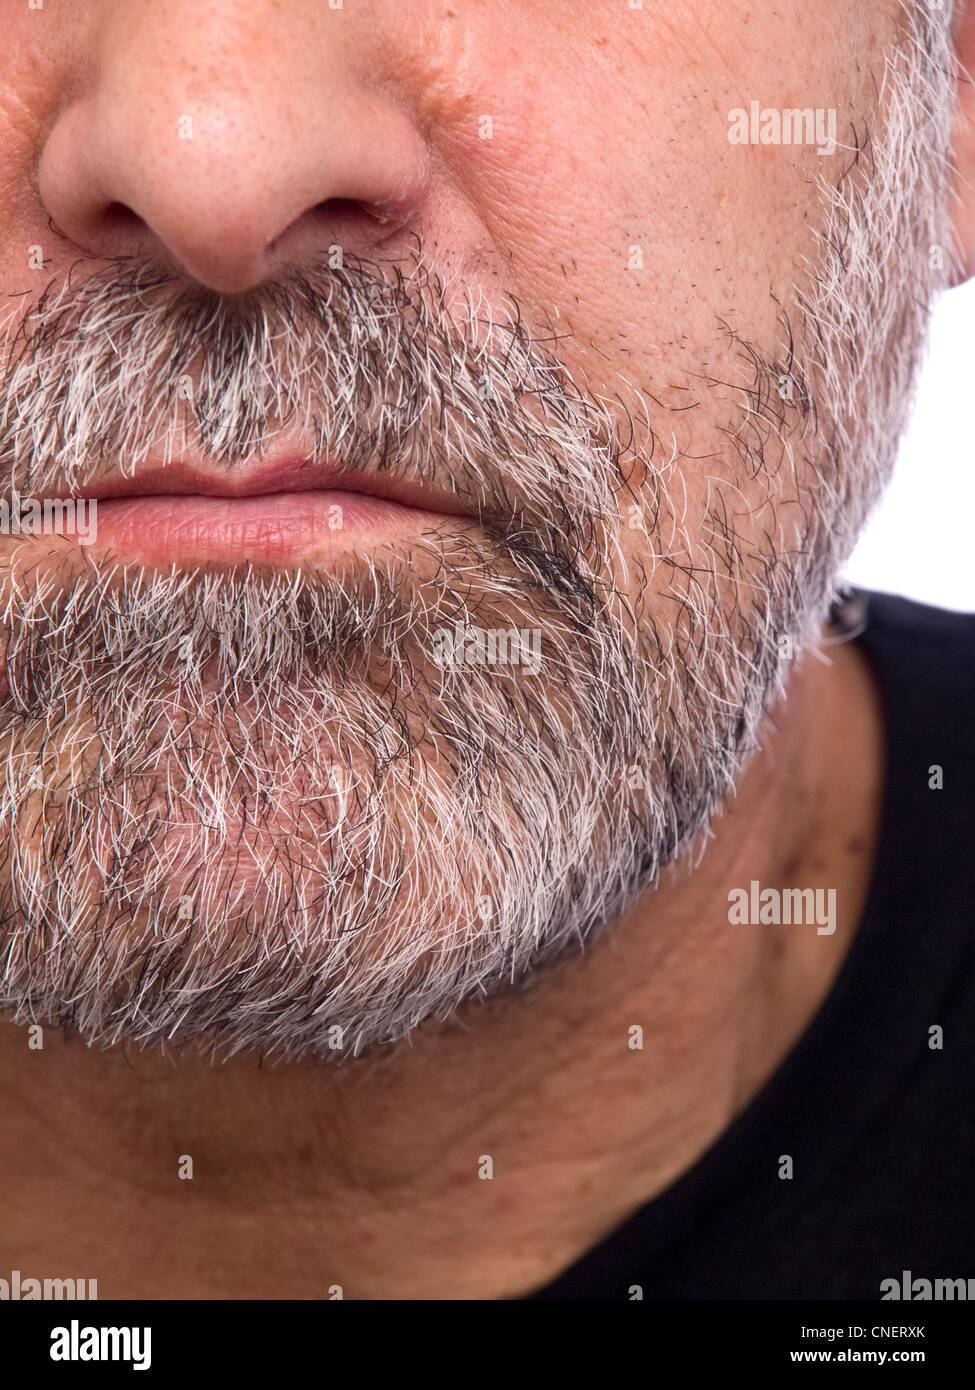 Extreme close up portrait of a serious looking man - Stock Image